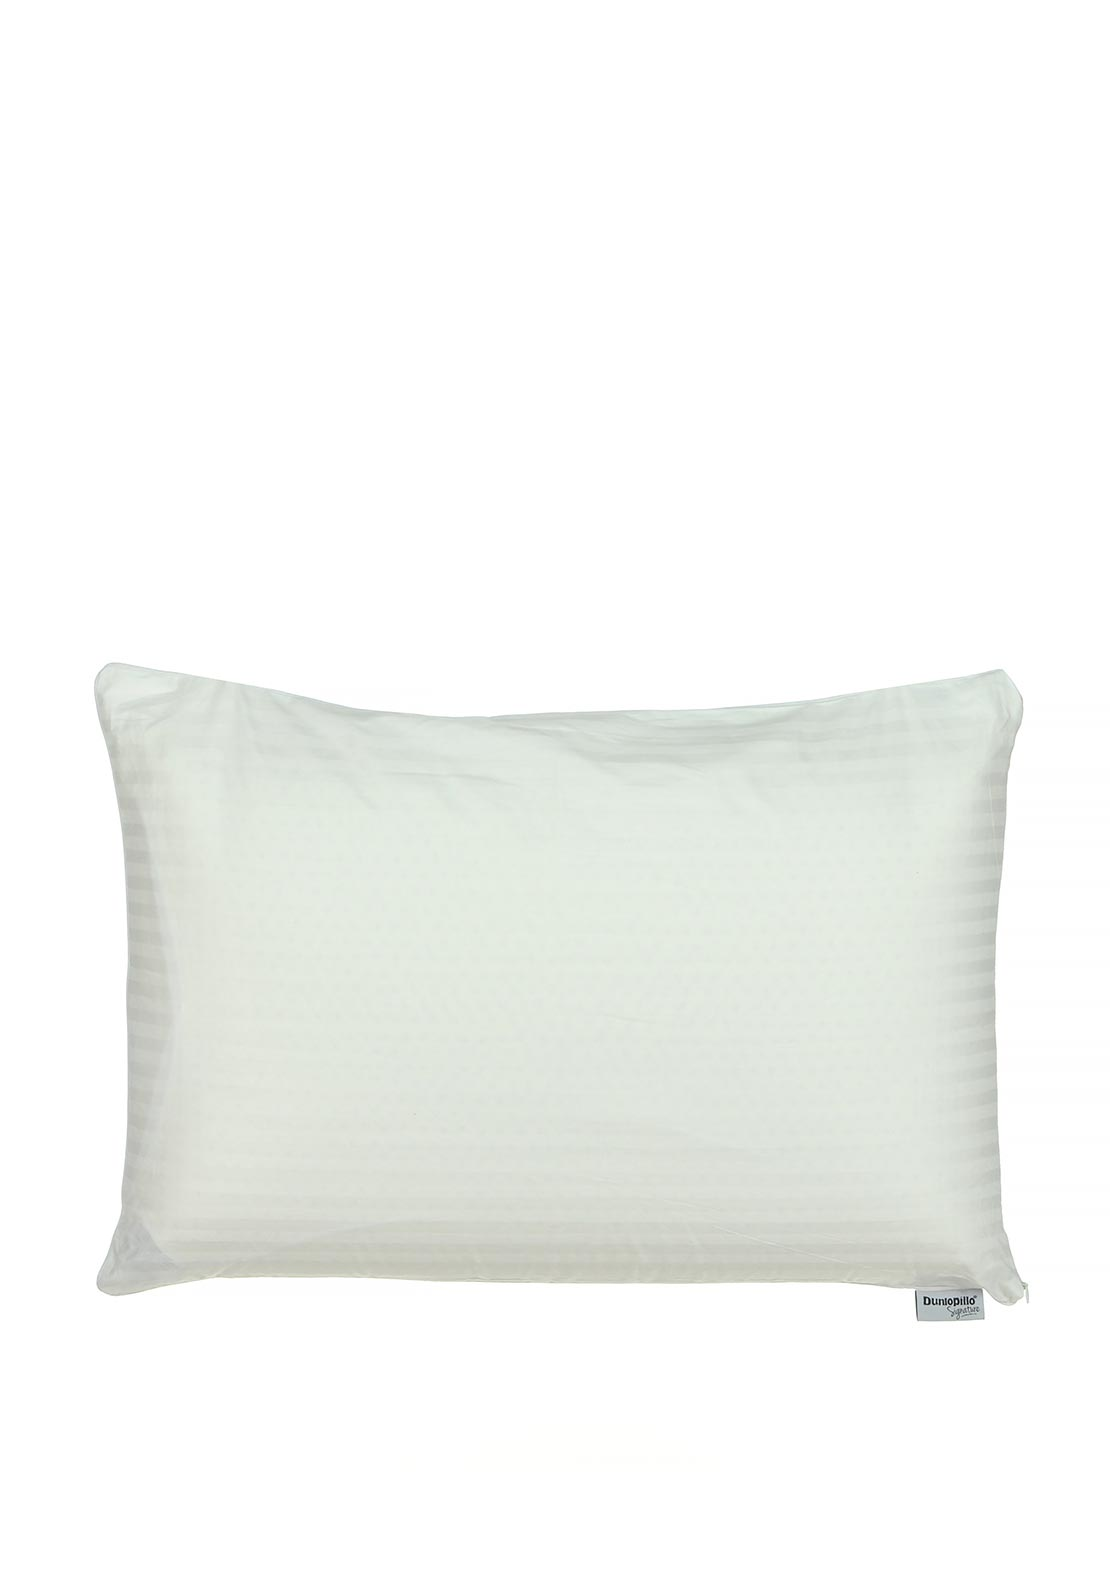 Dunlopillo Serenity Slim Deluxe Pillow